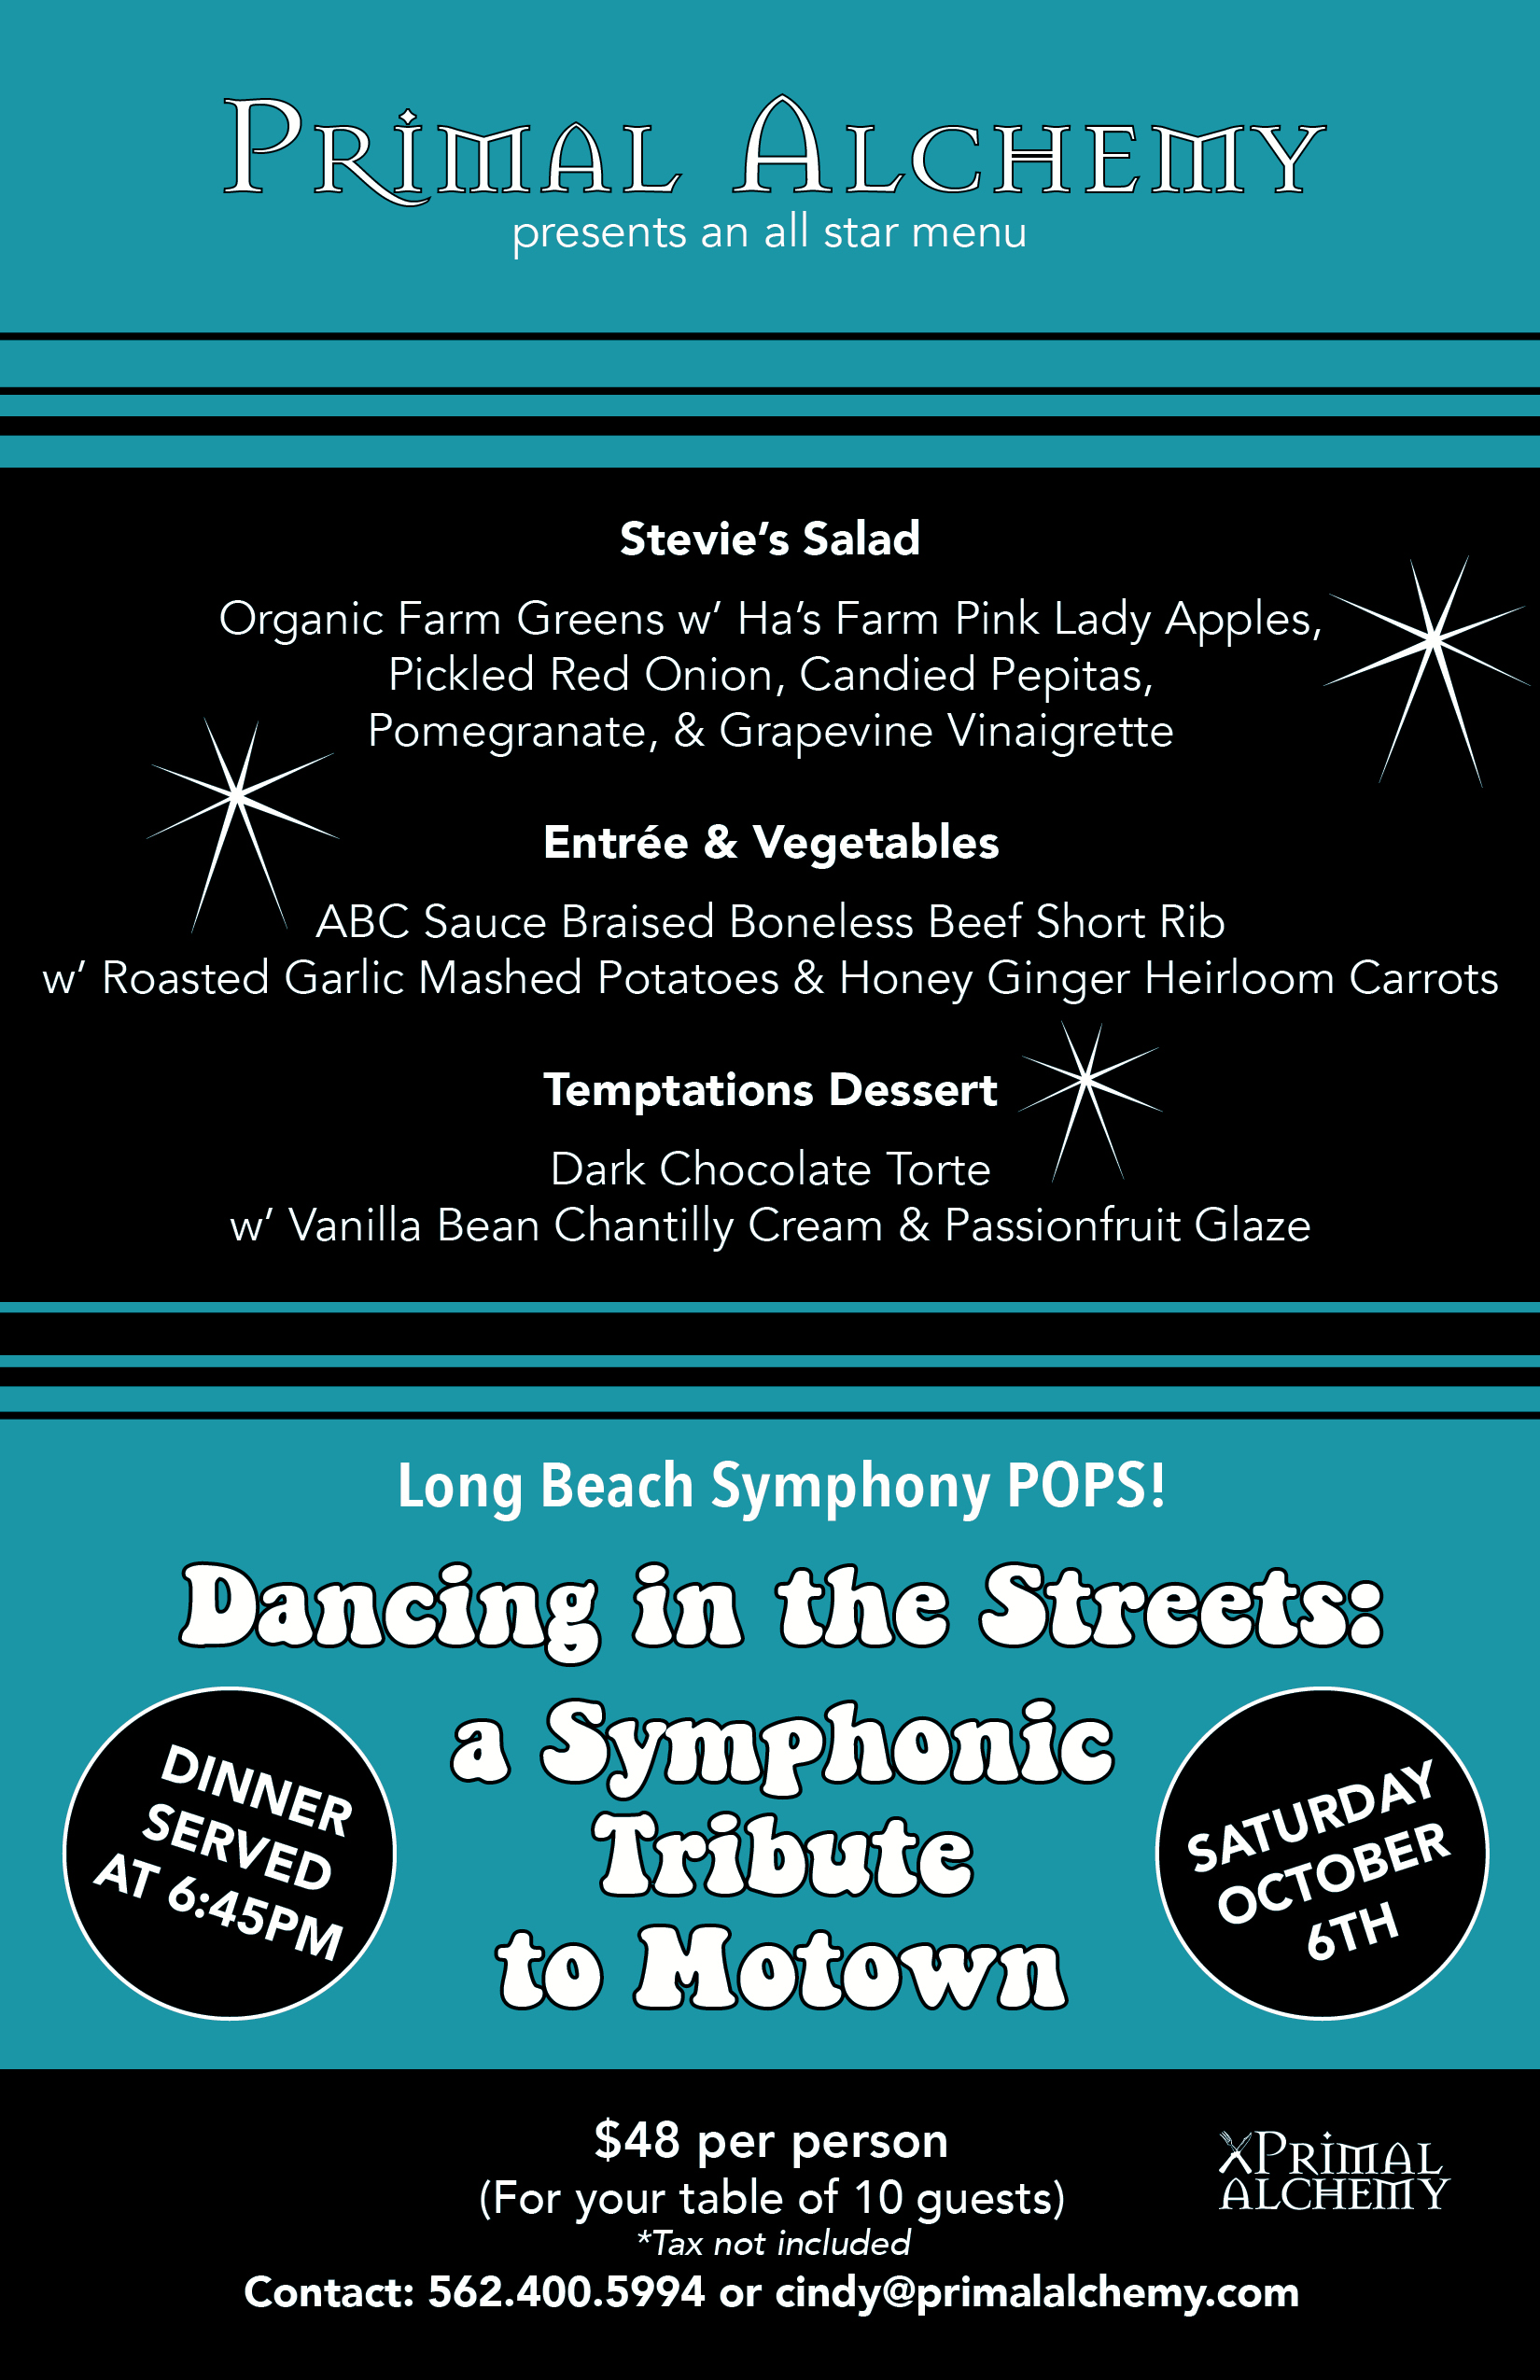 Dining and Catering - Long Beach Symphony